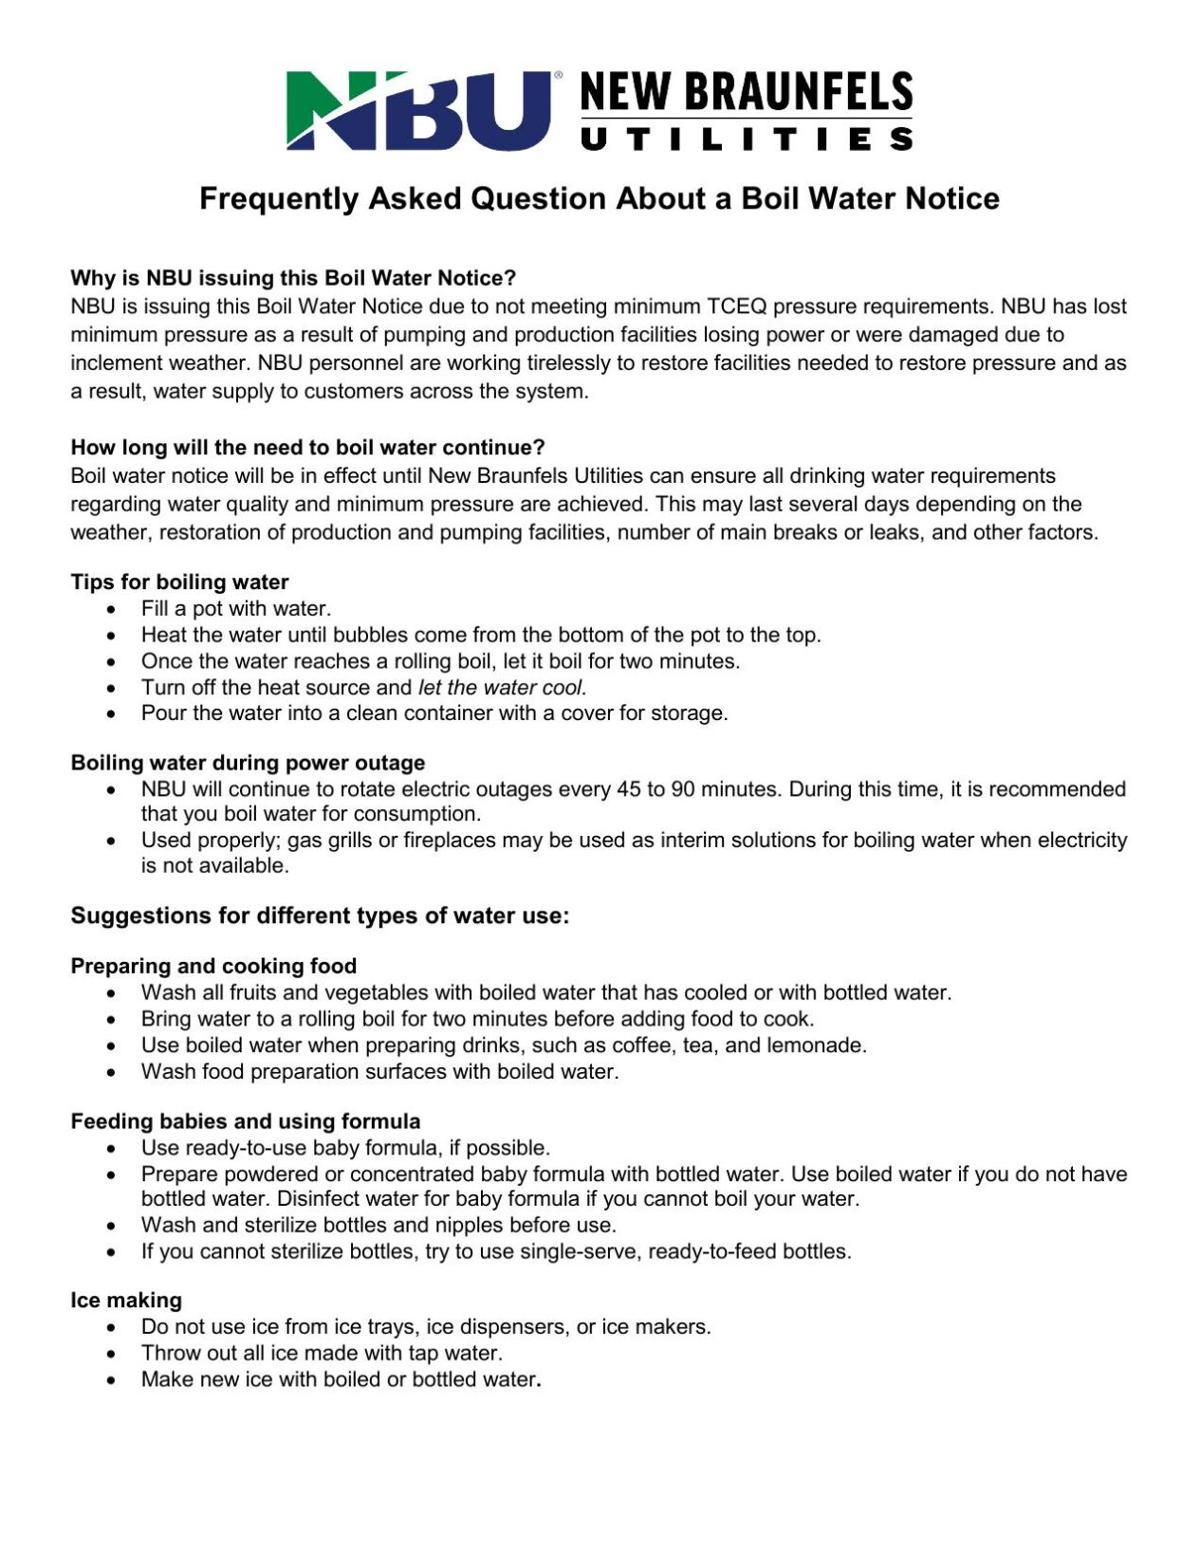 Boil Water Notice Guidelines